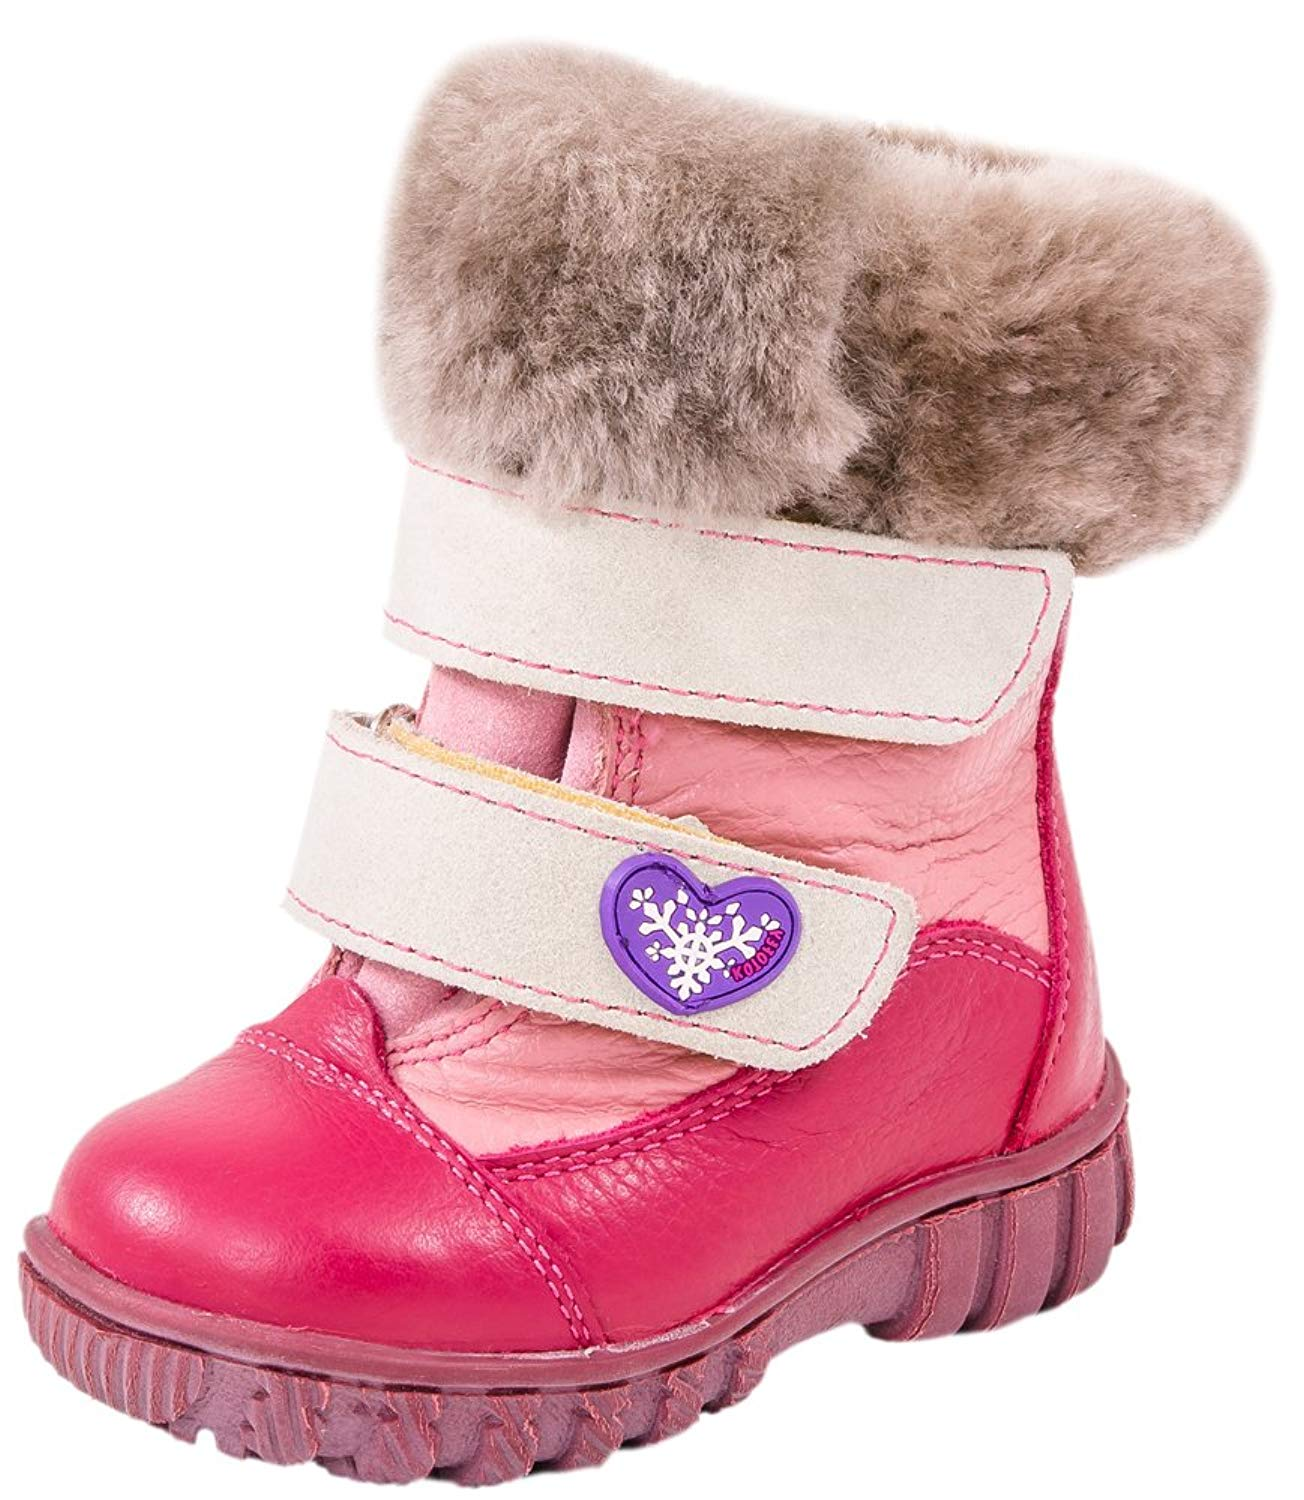 CHILDRENS GIRLS PINK SNUGG WARM WINTER FLAT PULL-ON FUR BOOTS KIDS SHOES 10-2